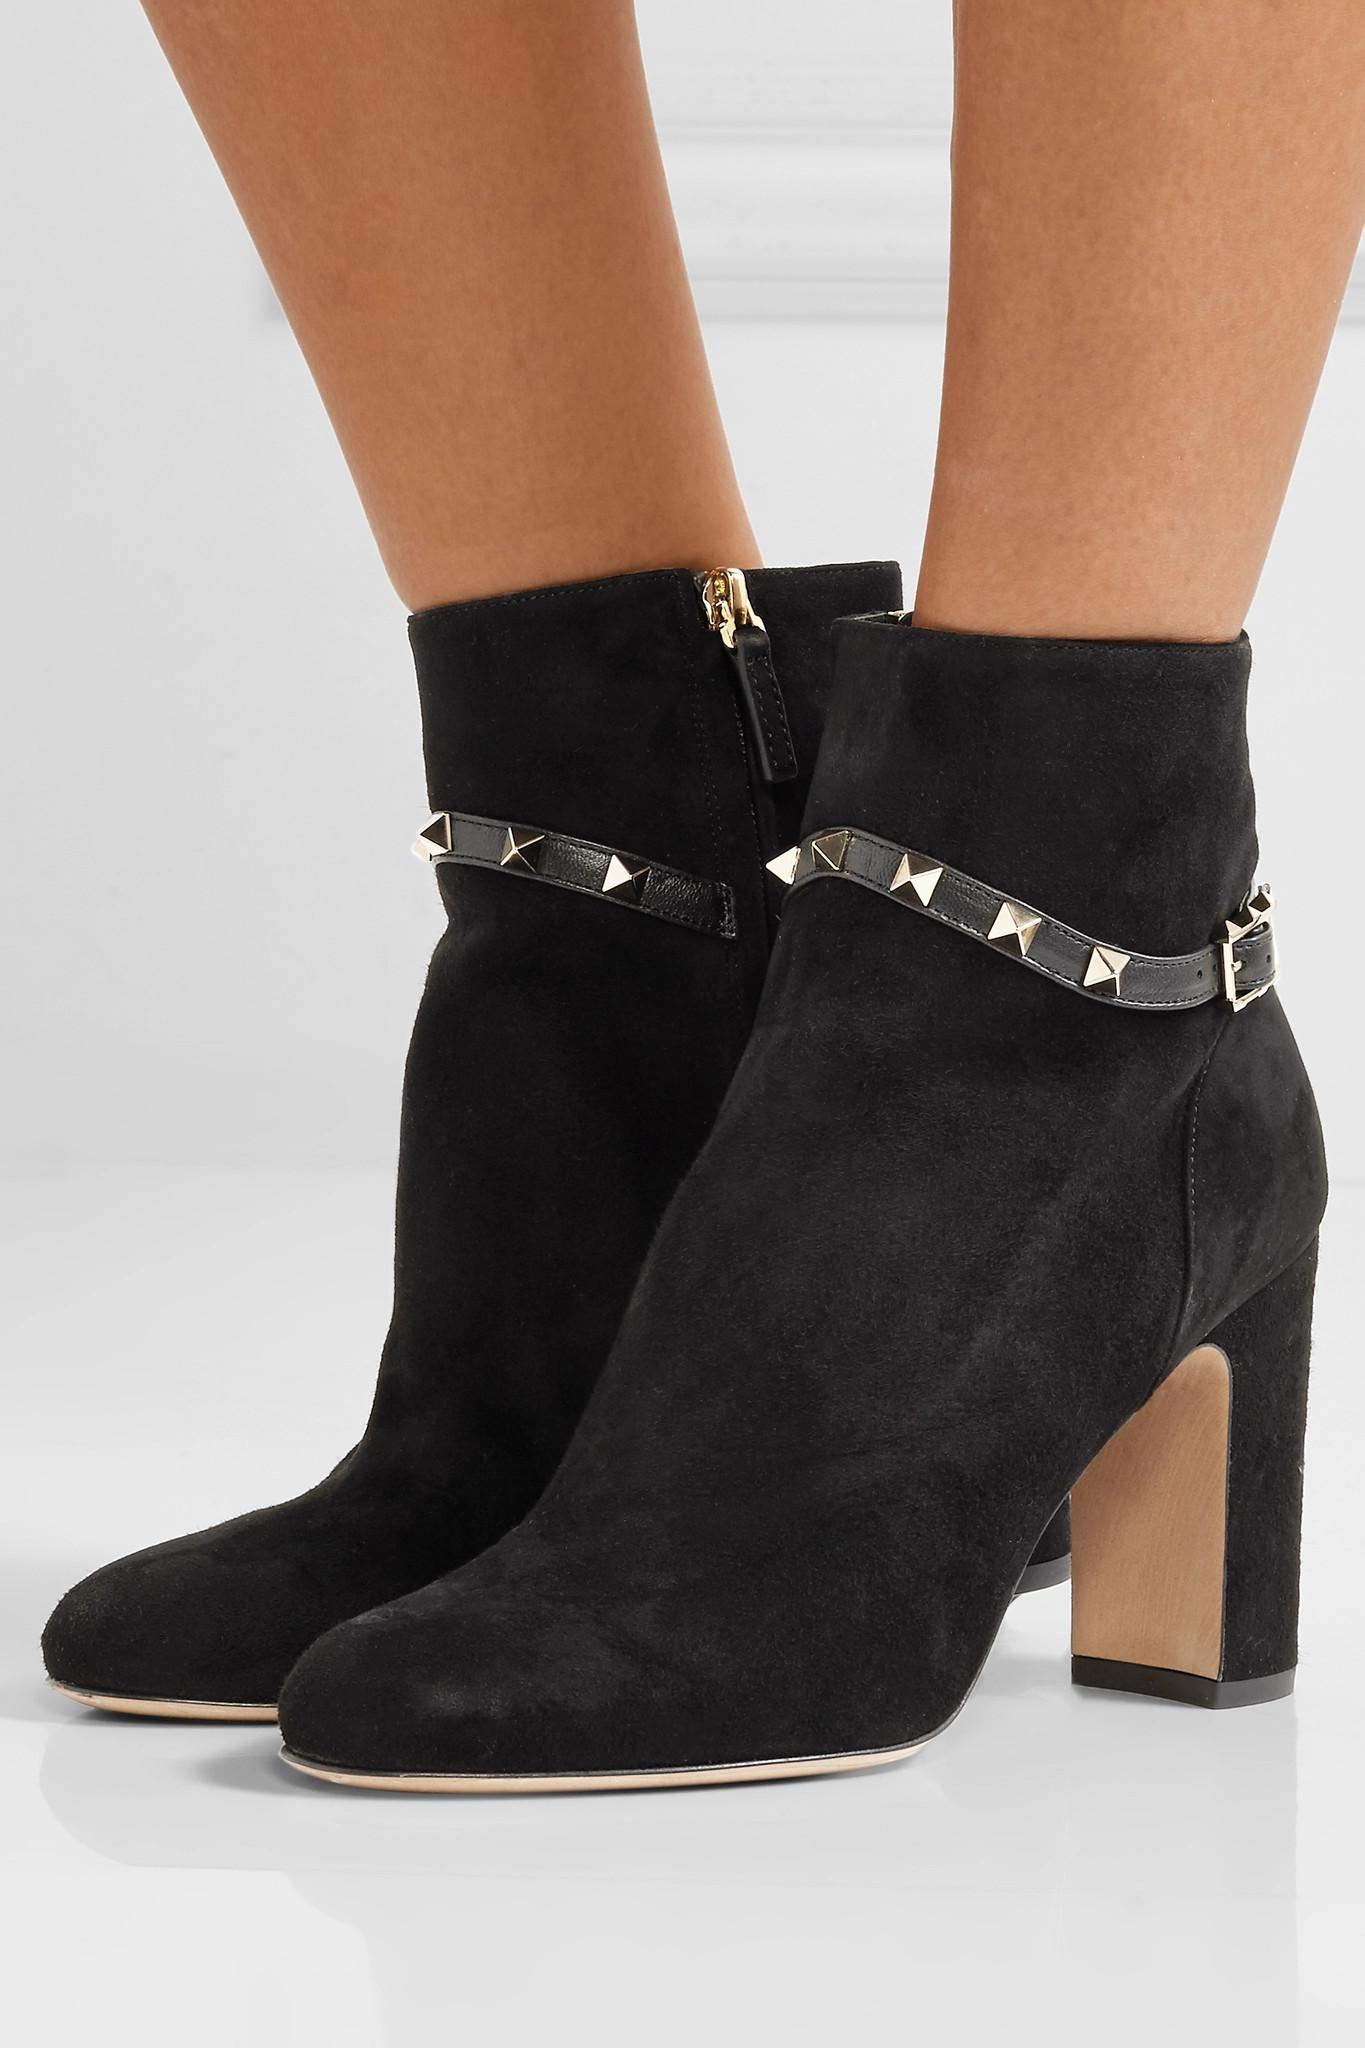 fd2e52b53d59 Valentino - Black Garavani The Rockstud Leather-trimmed Suede Ankle Boots -  Lyst. View fullscreen